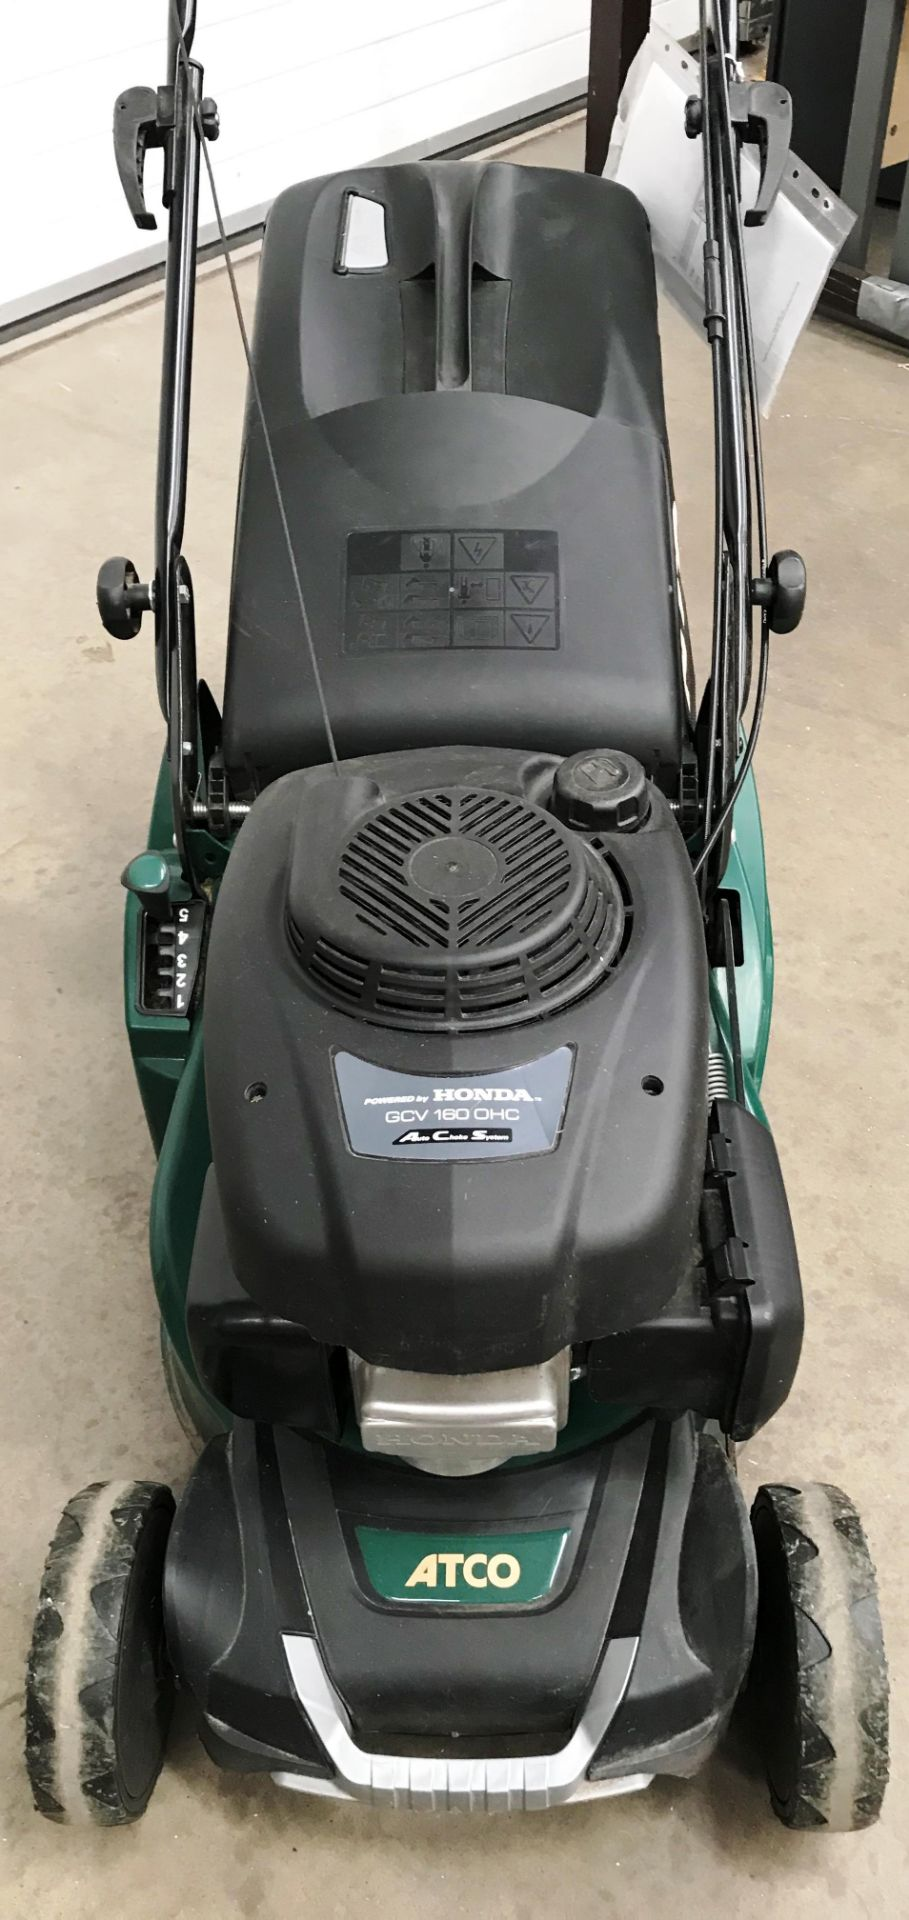 """An Atco NTL 434 TR-R model Liner 16SH 16"""" petrol rotary lawn mower with Honda GCV 160 OHC engine - Image 2 of 3"""